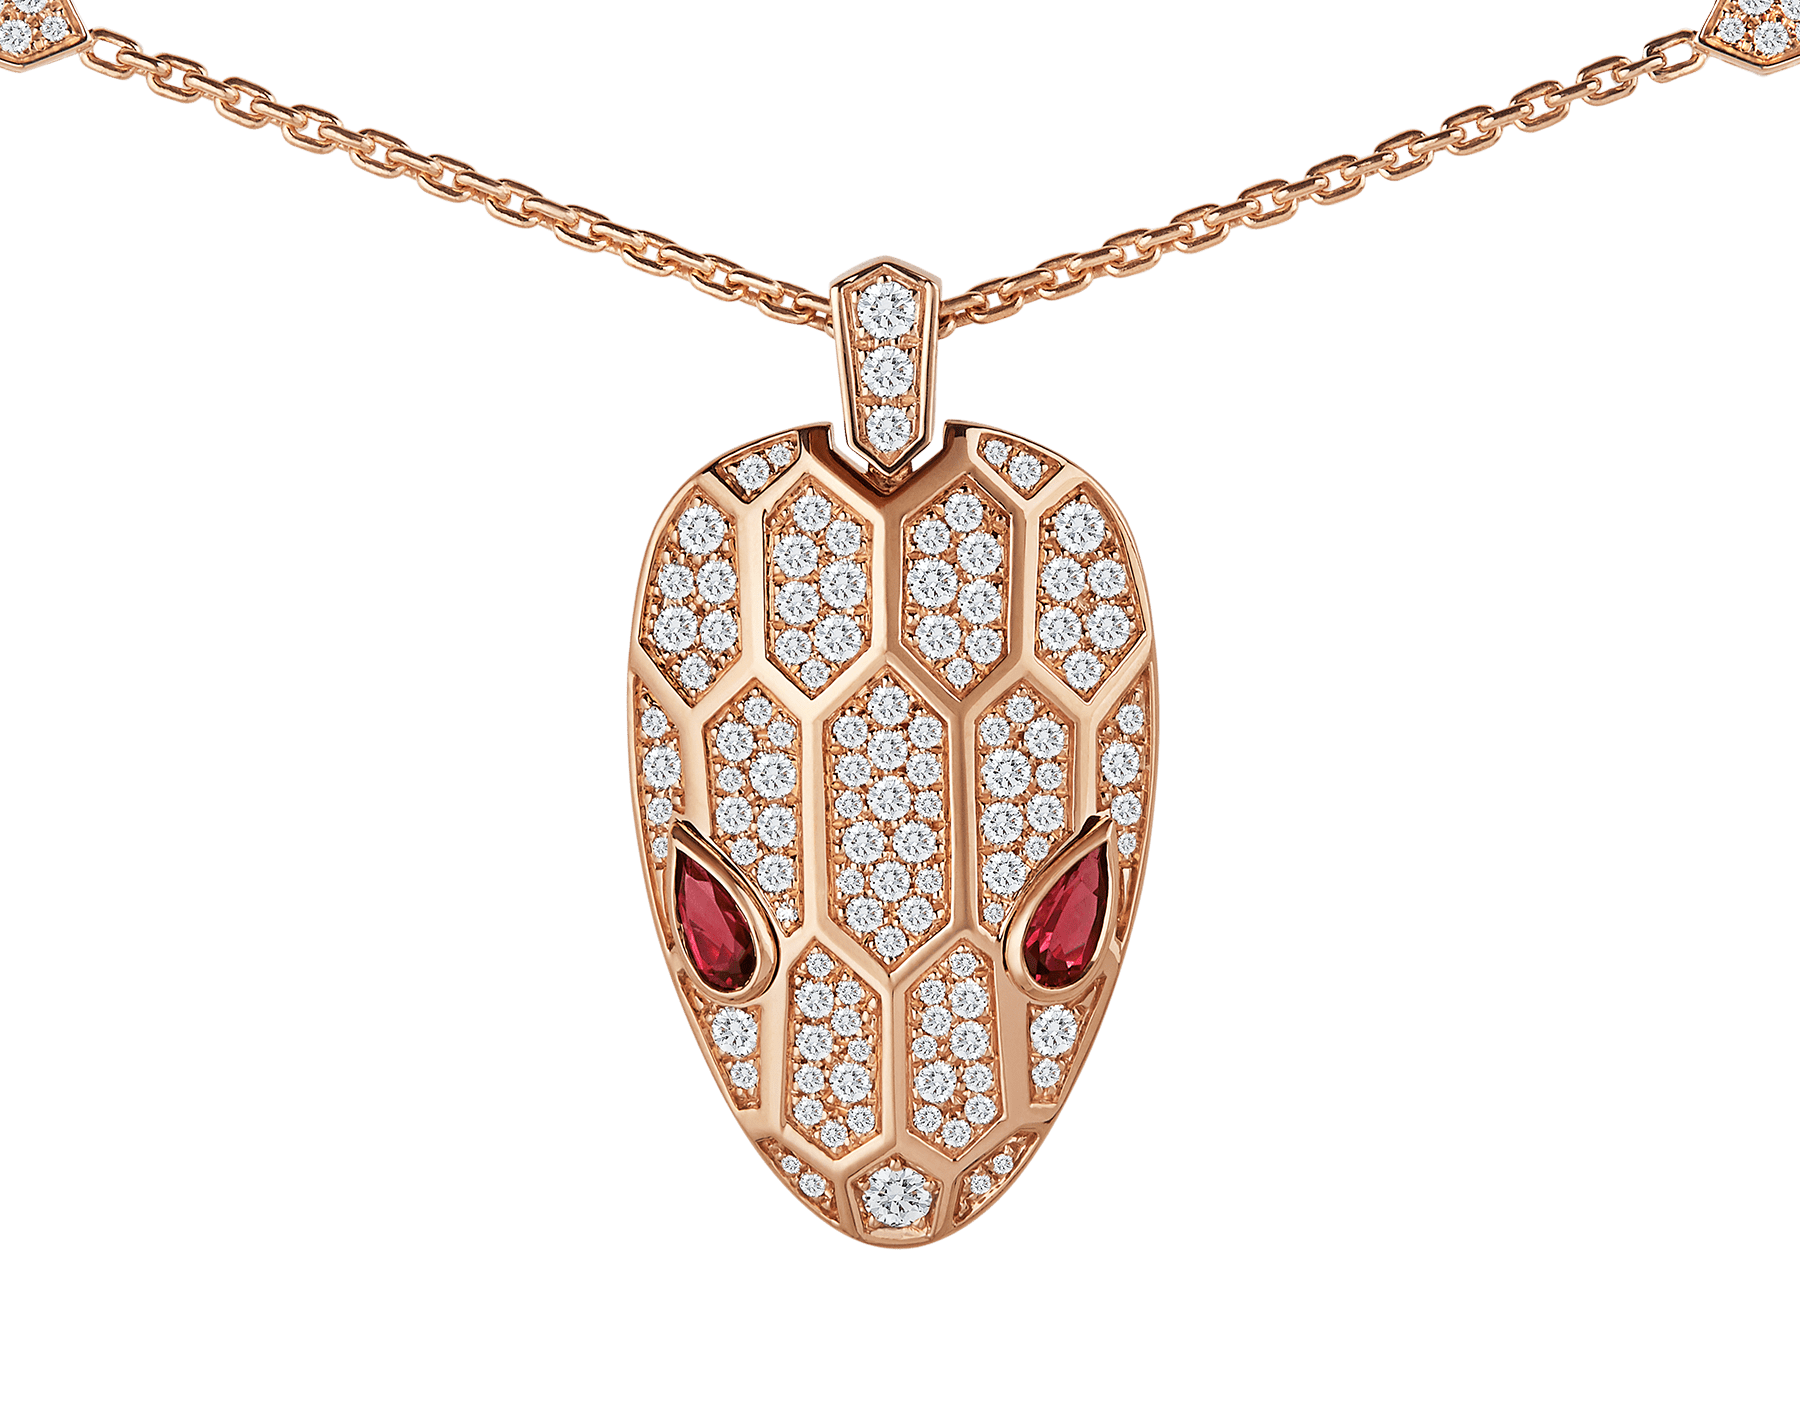 Serpenti necklace in 18 kt rose gold, set with rubellite eyes and with pavé diamonds on the chain and the head. 352725 image 3